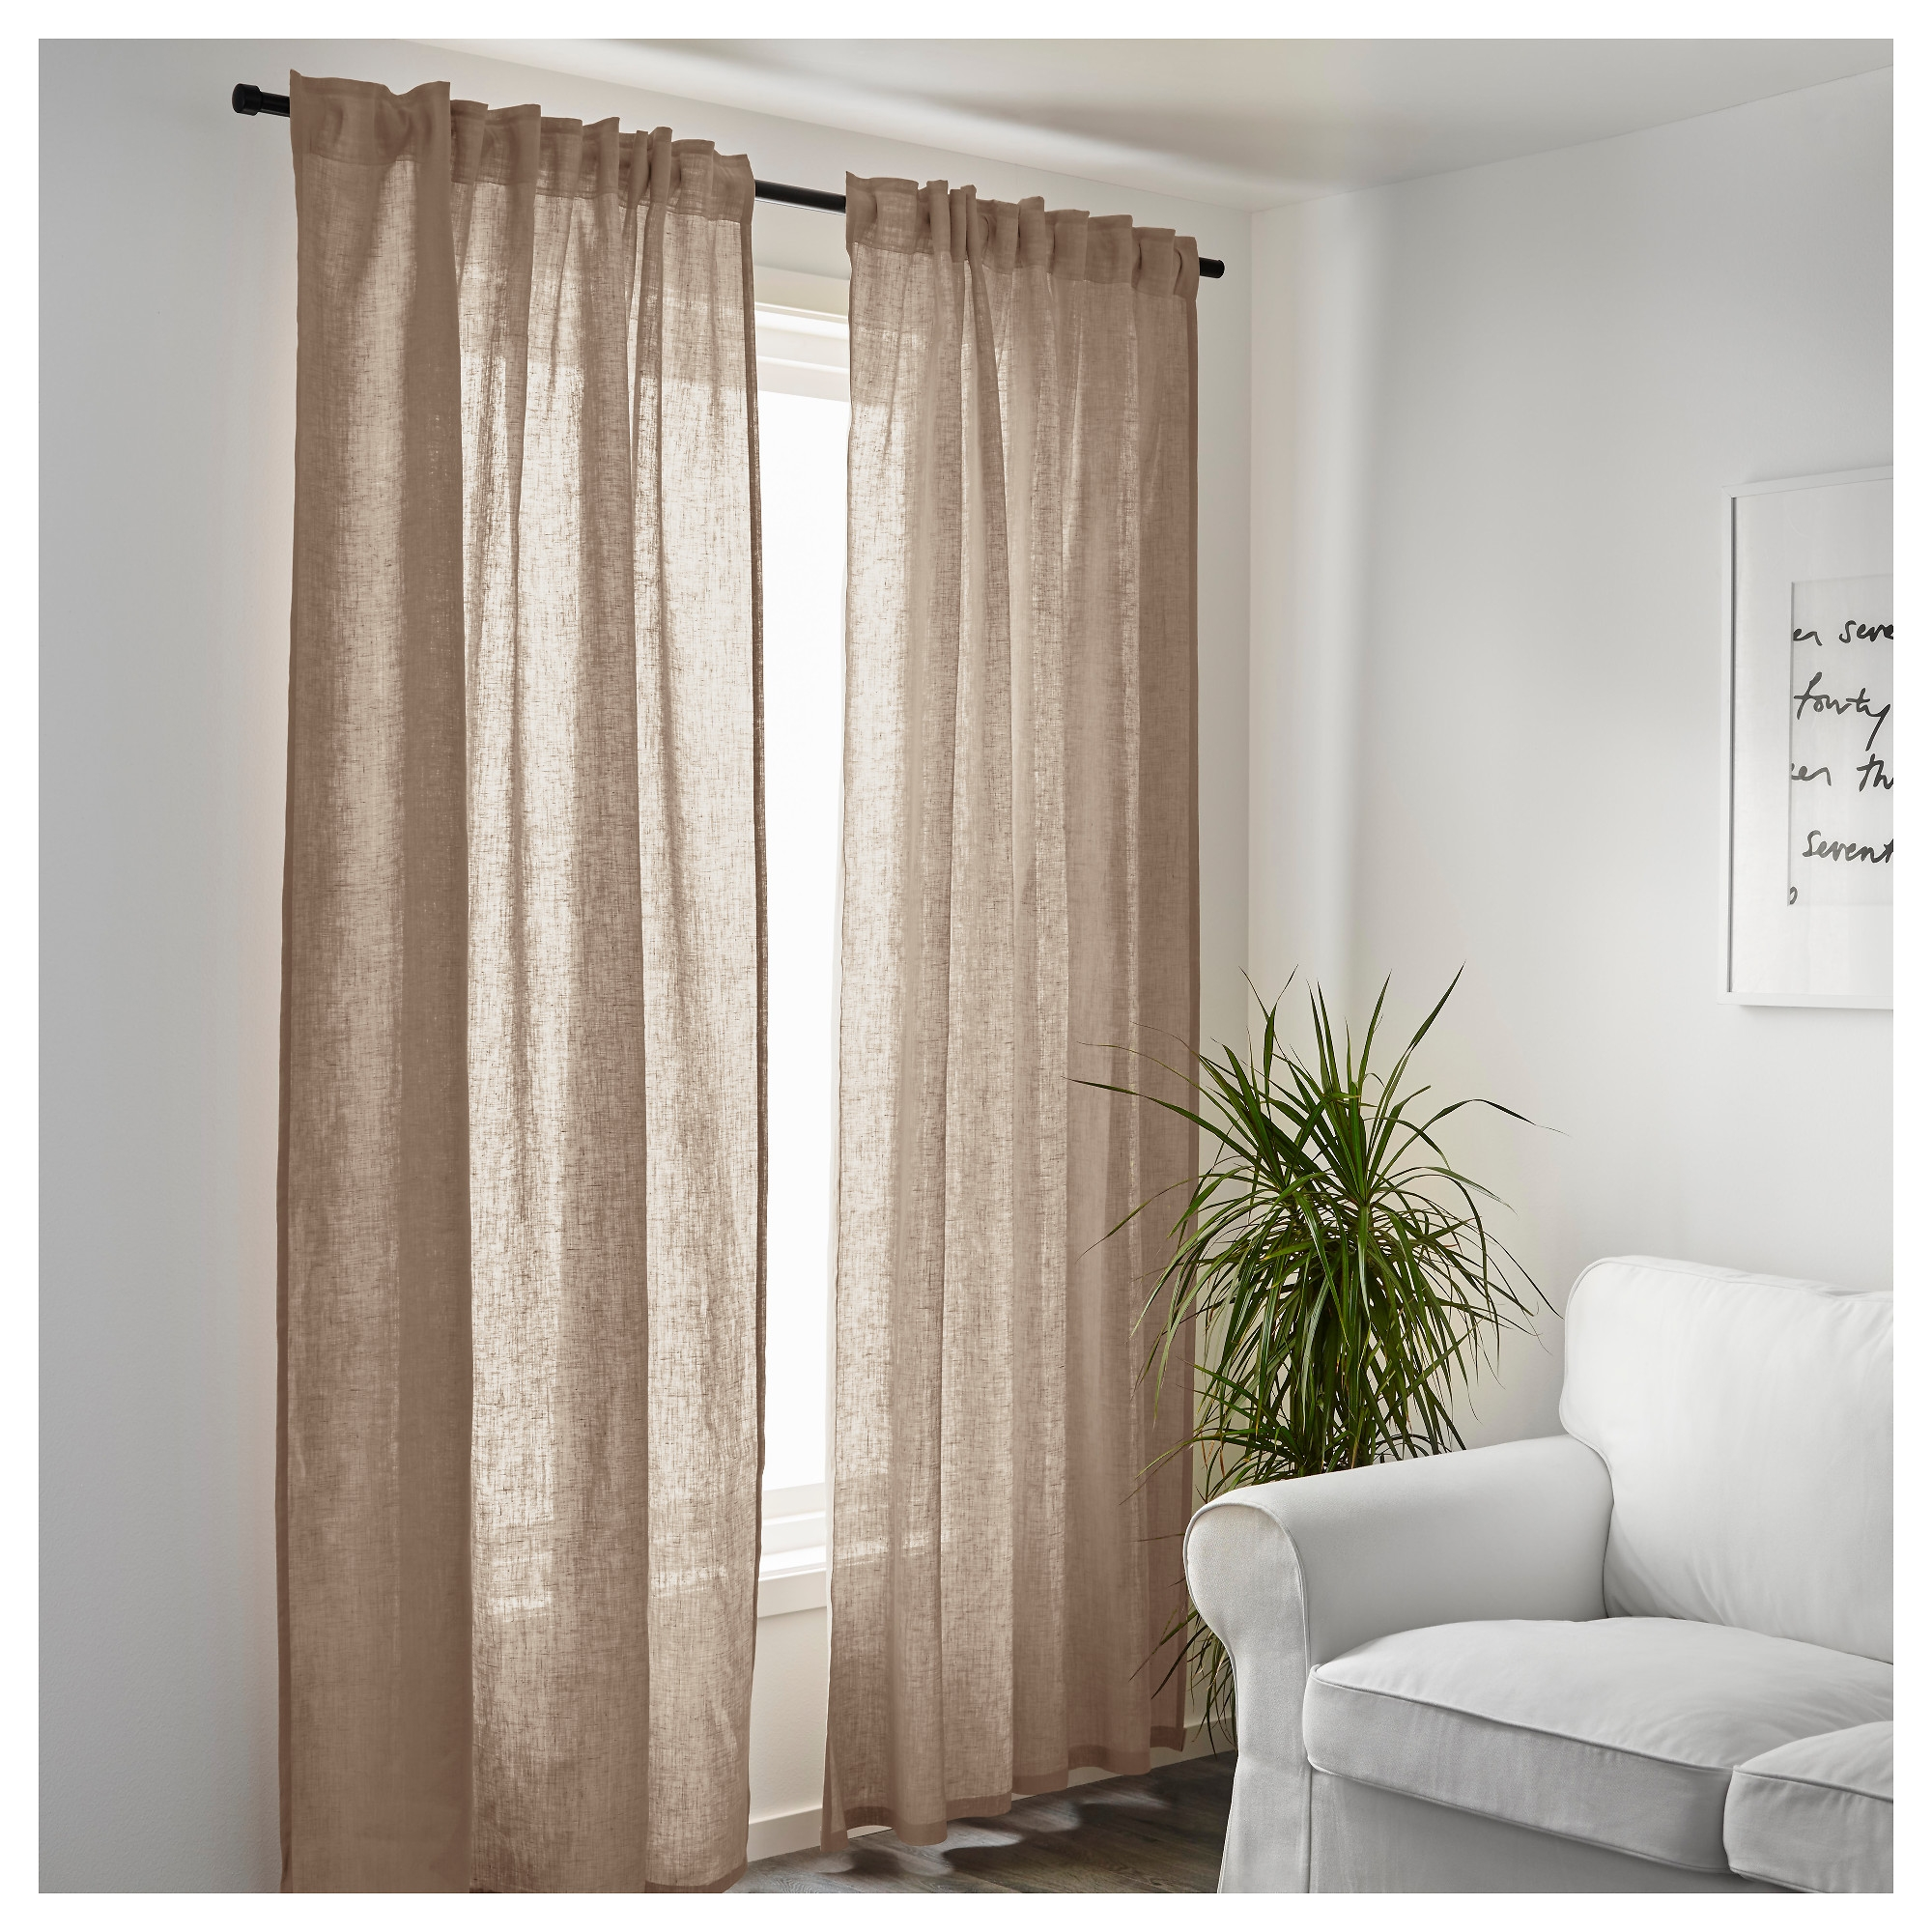 Aina Curtains 1 Pair Ikea In Natural Linen Drapes (View 3 of 15)